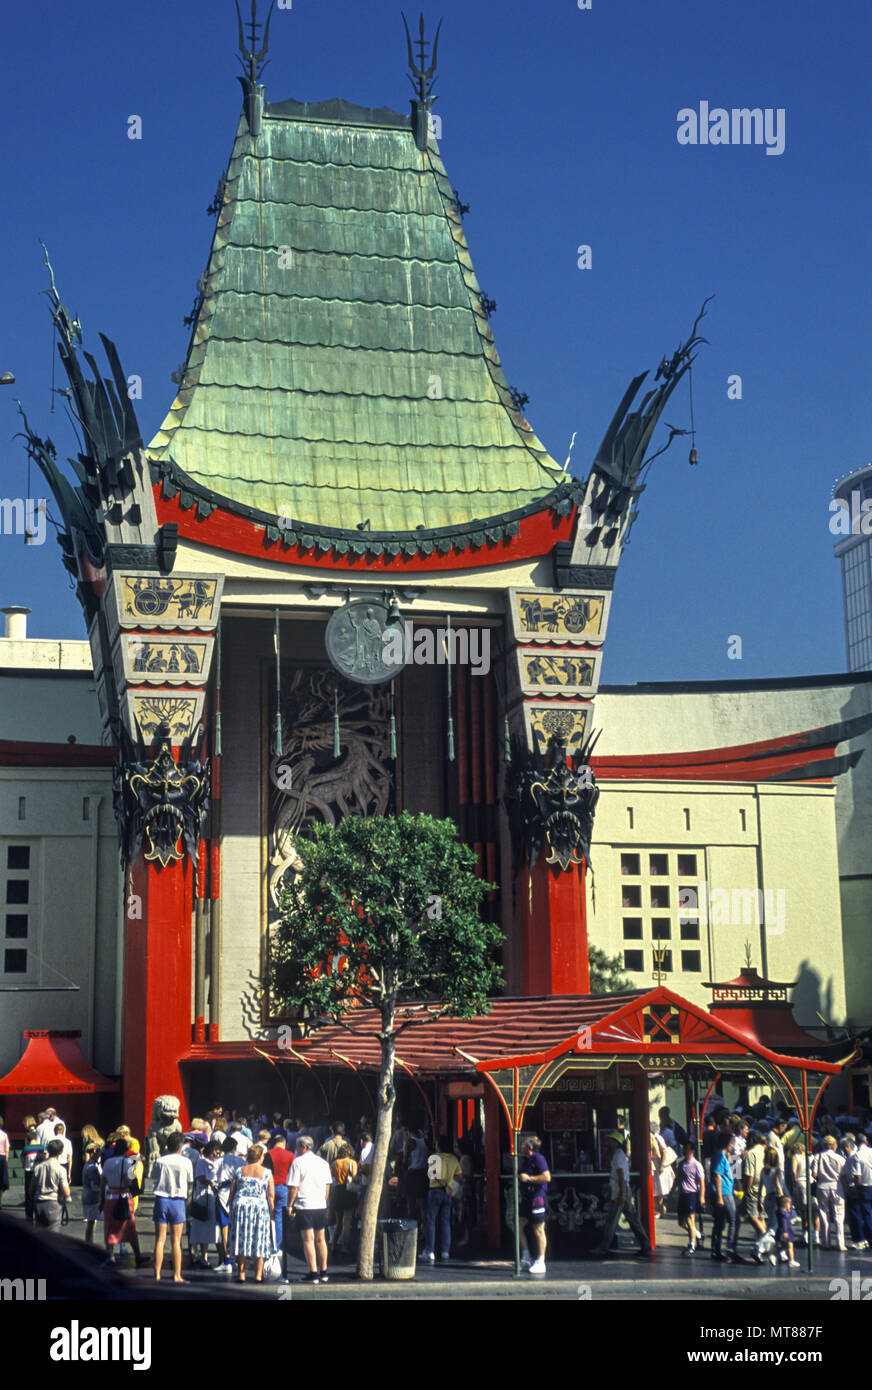 1990 HISTORICAL GRAUMAN'S CHINESE THEATER (©MAYER & HOLLER 1927) WALK OF FAME HOLLYWOOD BOULEVARD LOS ANGELES CALIFORNIA USA - Stock Image